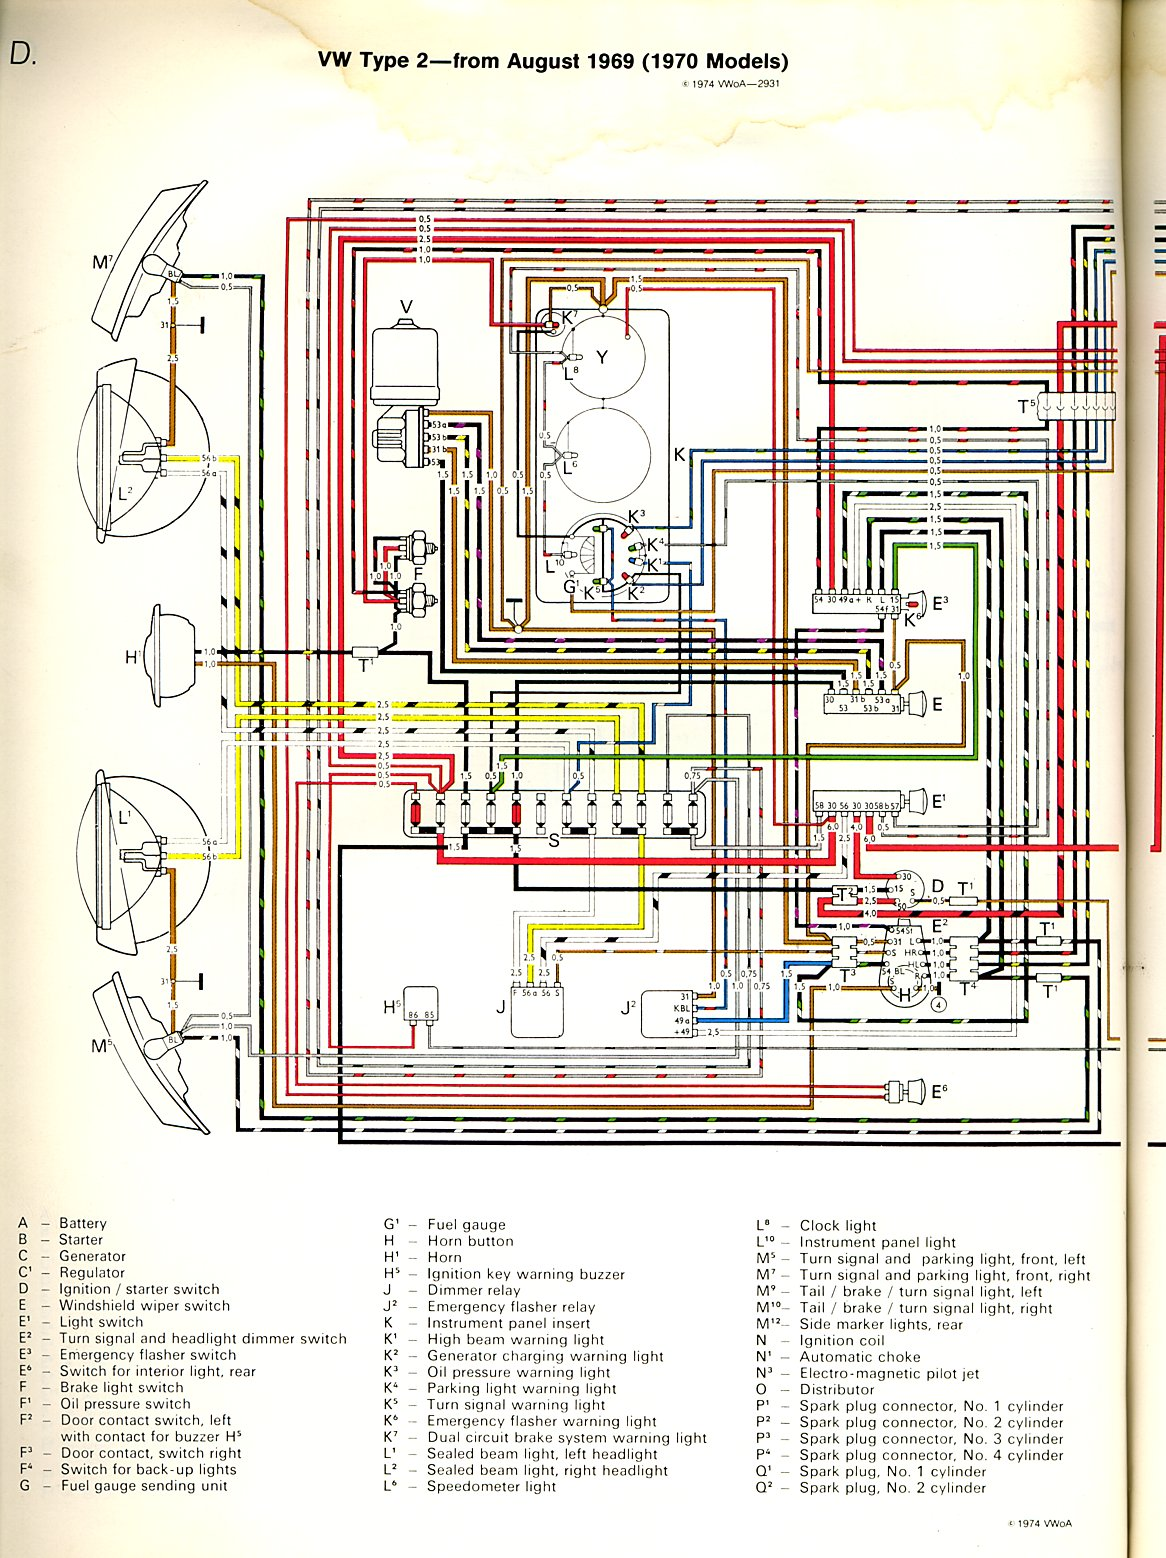 thesamba.com :: type 2 wiring diagrams 1969 buick lesabre ignition wiring diagram 1969 volkswagen beetle ignition wiring diagram #9